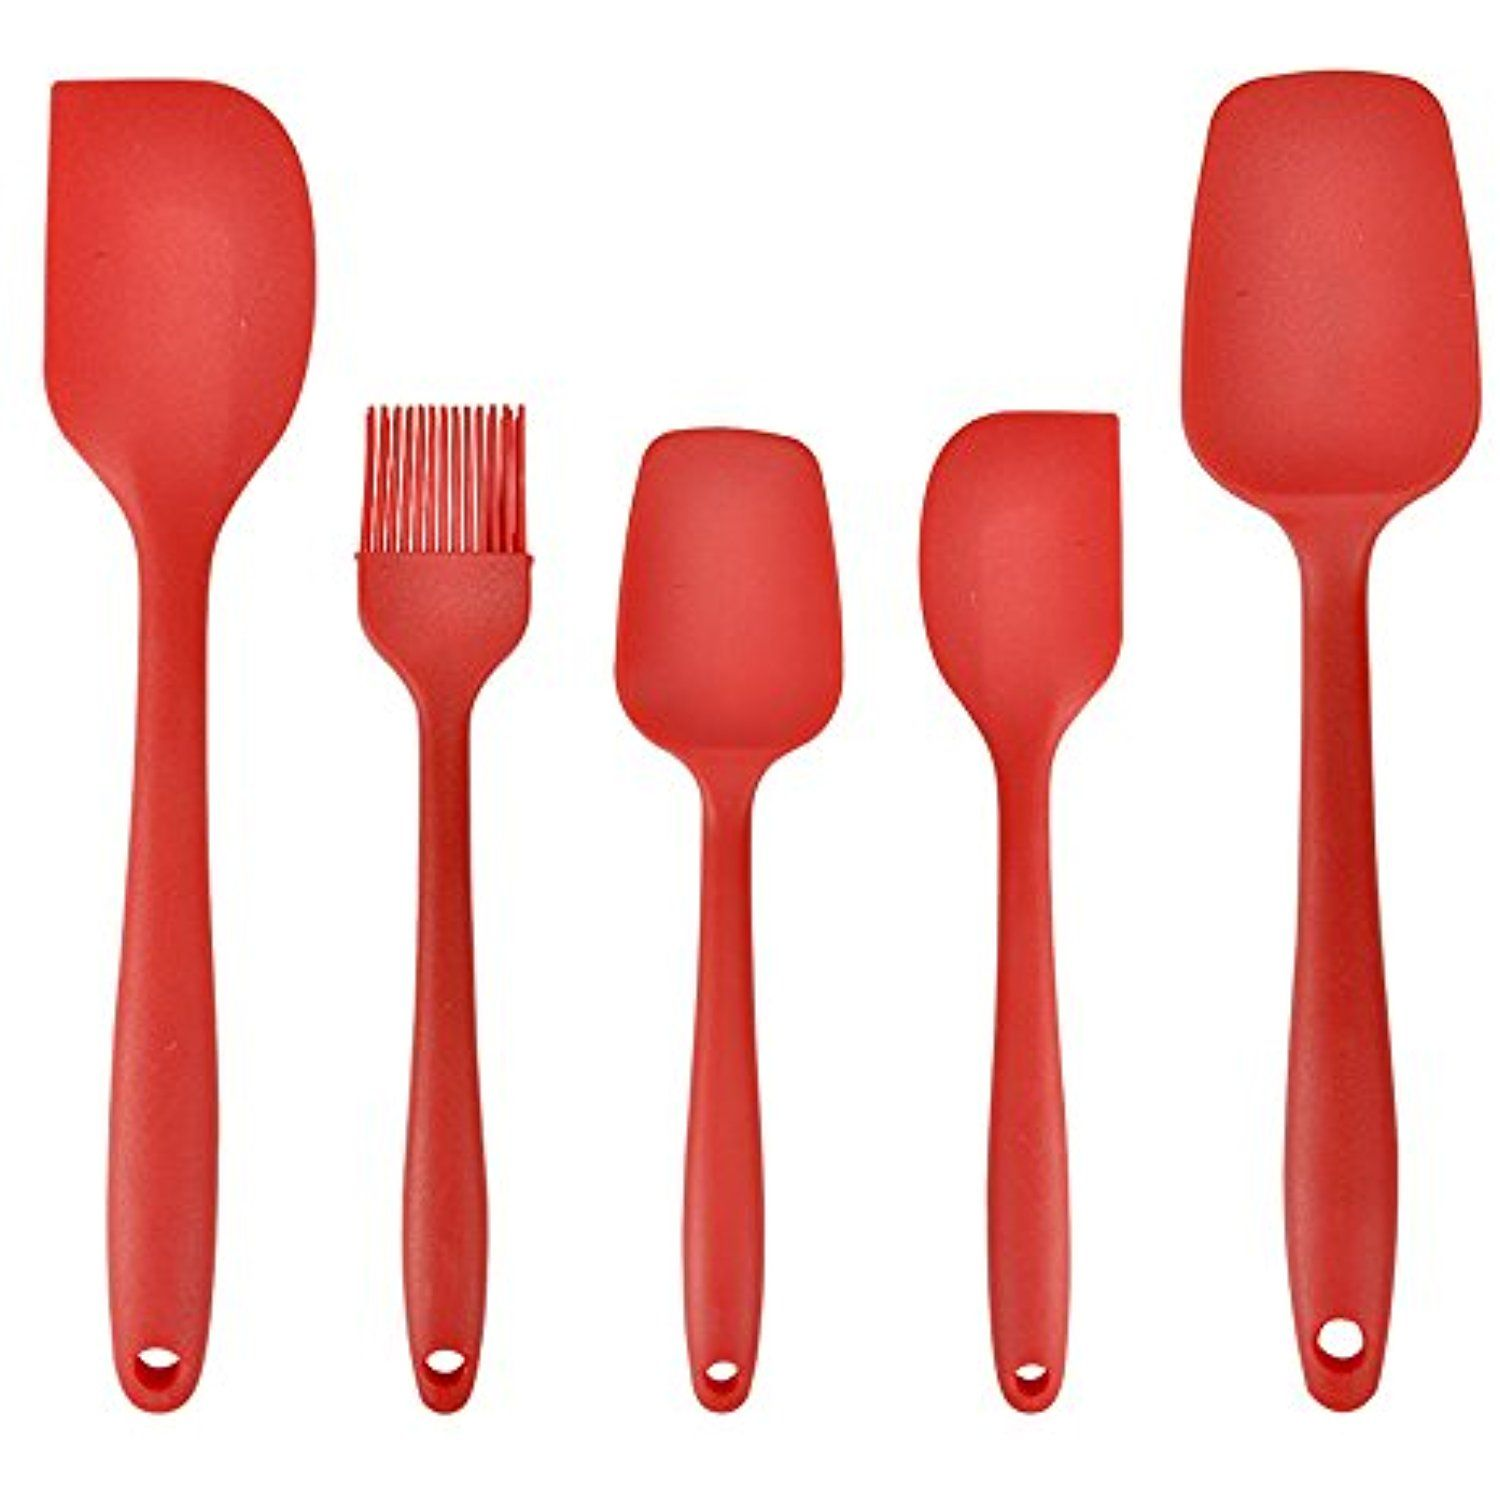 5 Kitchen Utensils Cooking Tools Eco Tableware Silicone Spoon